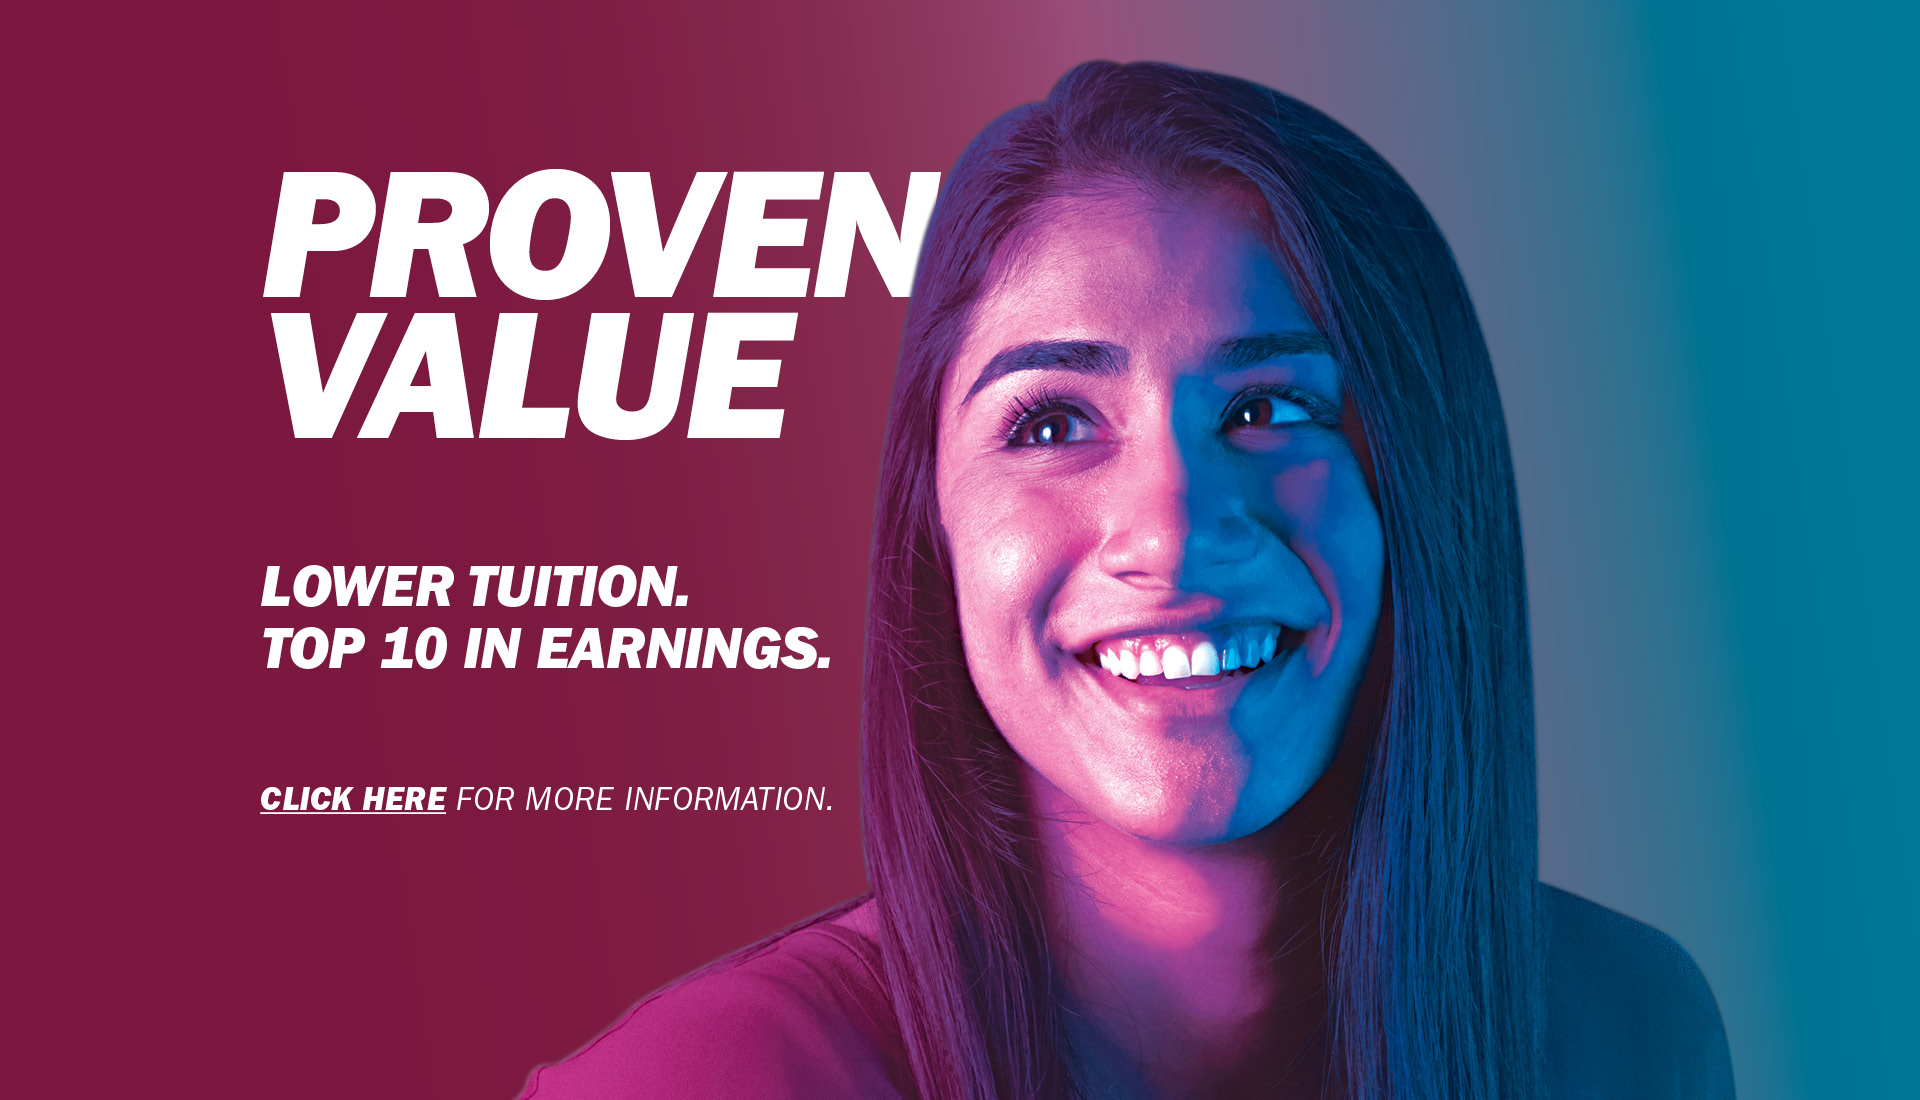 Proven Value. Lower Tuition. Top 10 in Earnings. Click here for more.